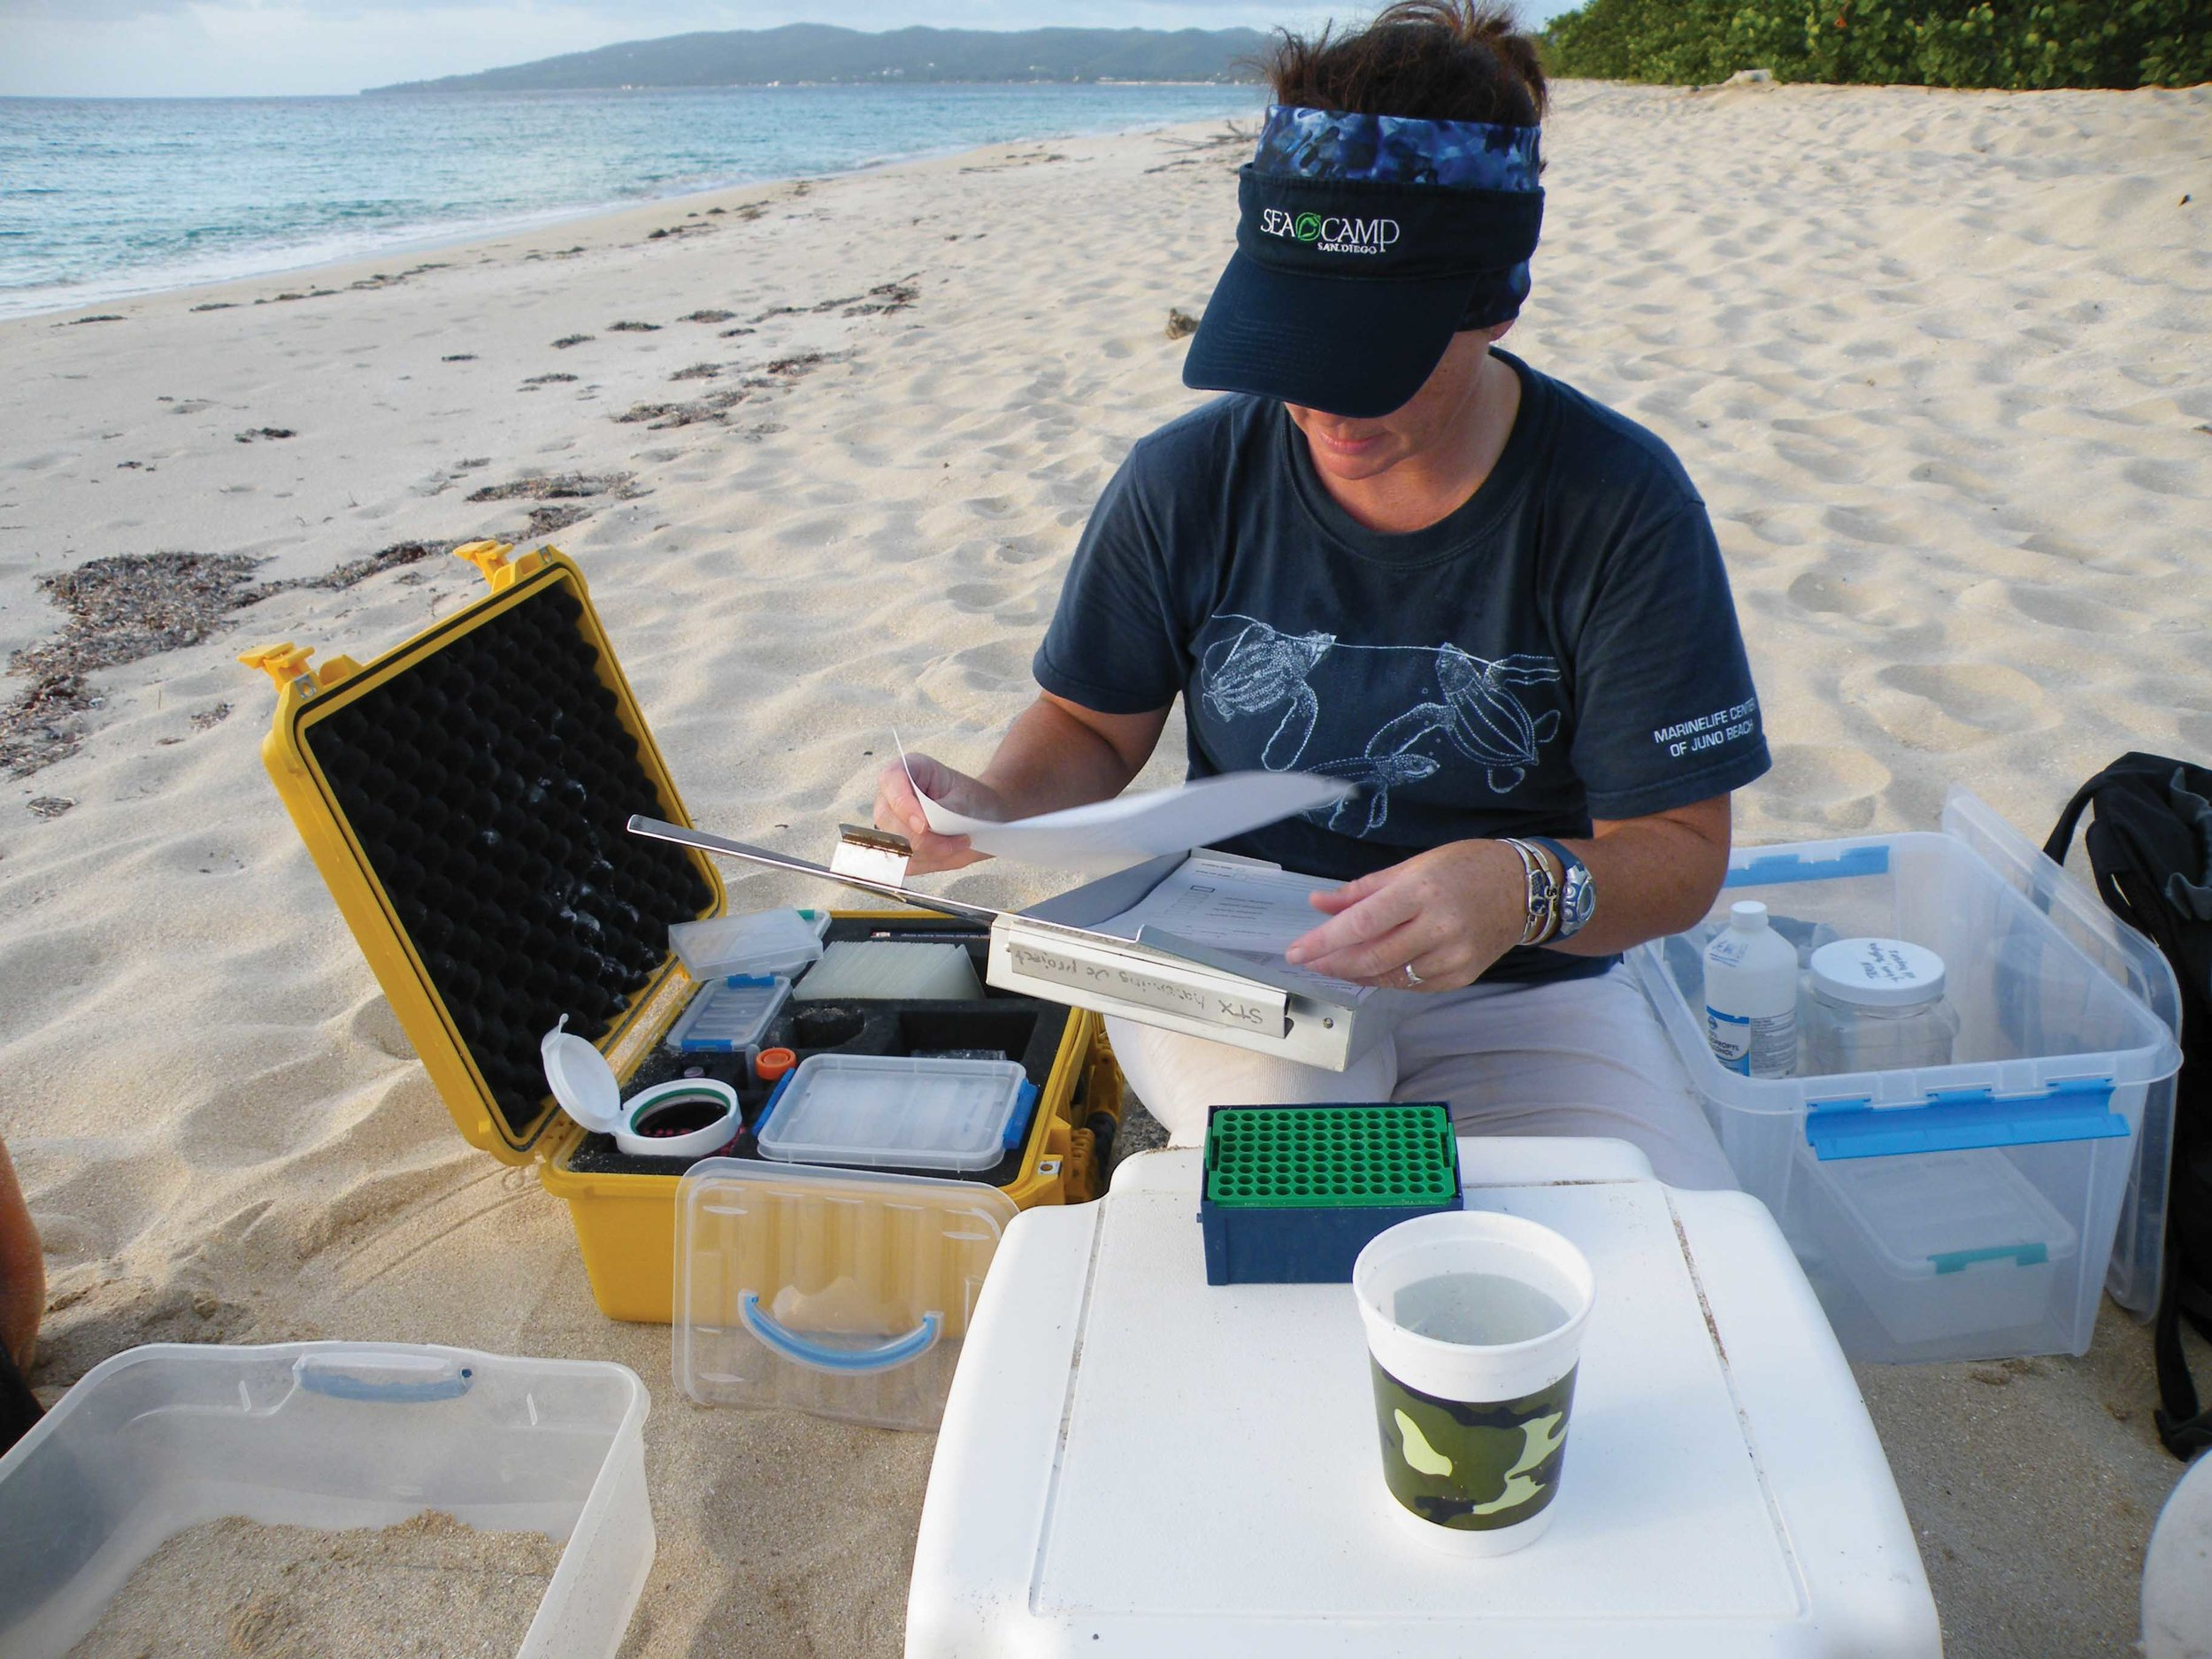 A researcher organizes DNA samples collected on the beach in St. Croix, U.S. Virgin Islands. © Jeremy W. Smith